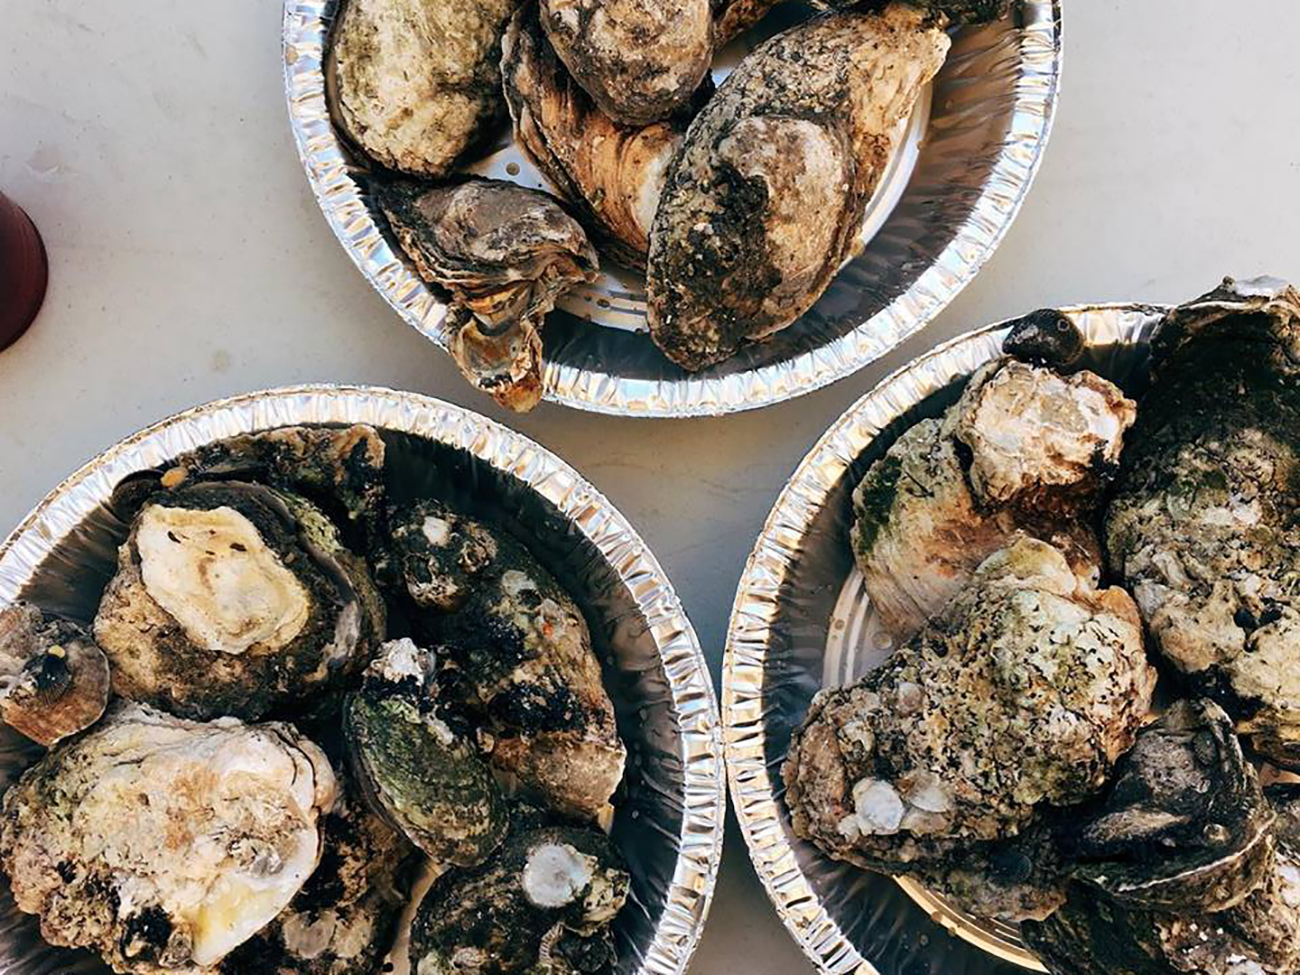 Agenda Weekender: 100+ things to do this weekend, including Sycamore's Spring Oyster Roast, the Moo & Brew Fest and multiple cornhole tournaments